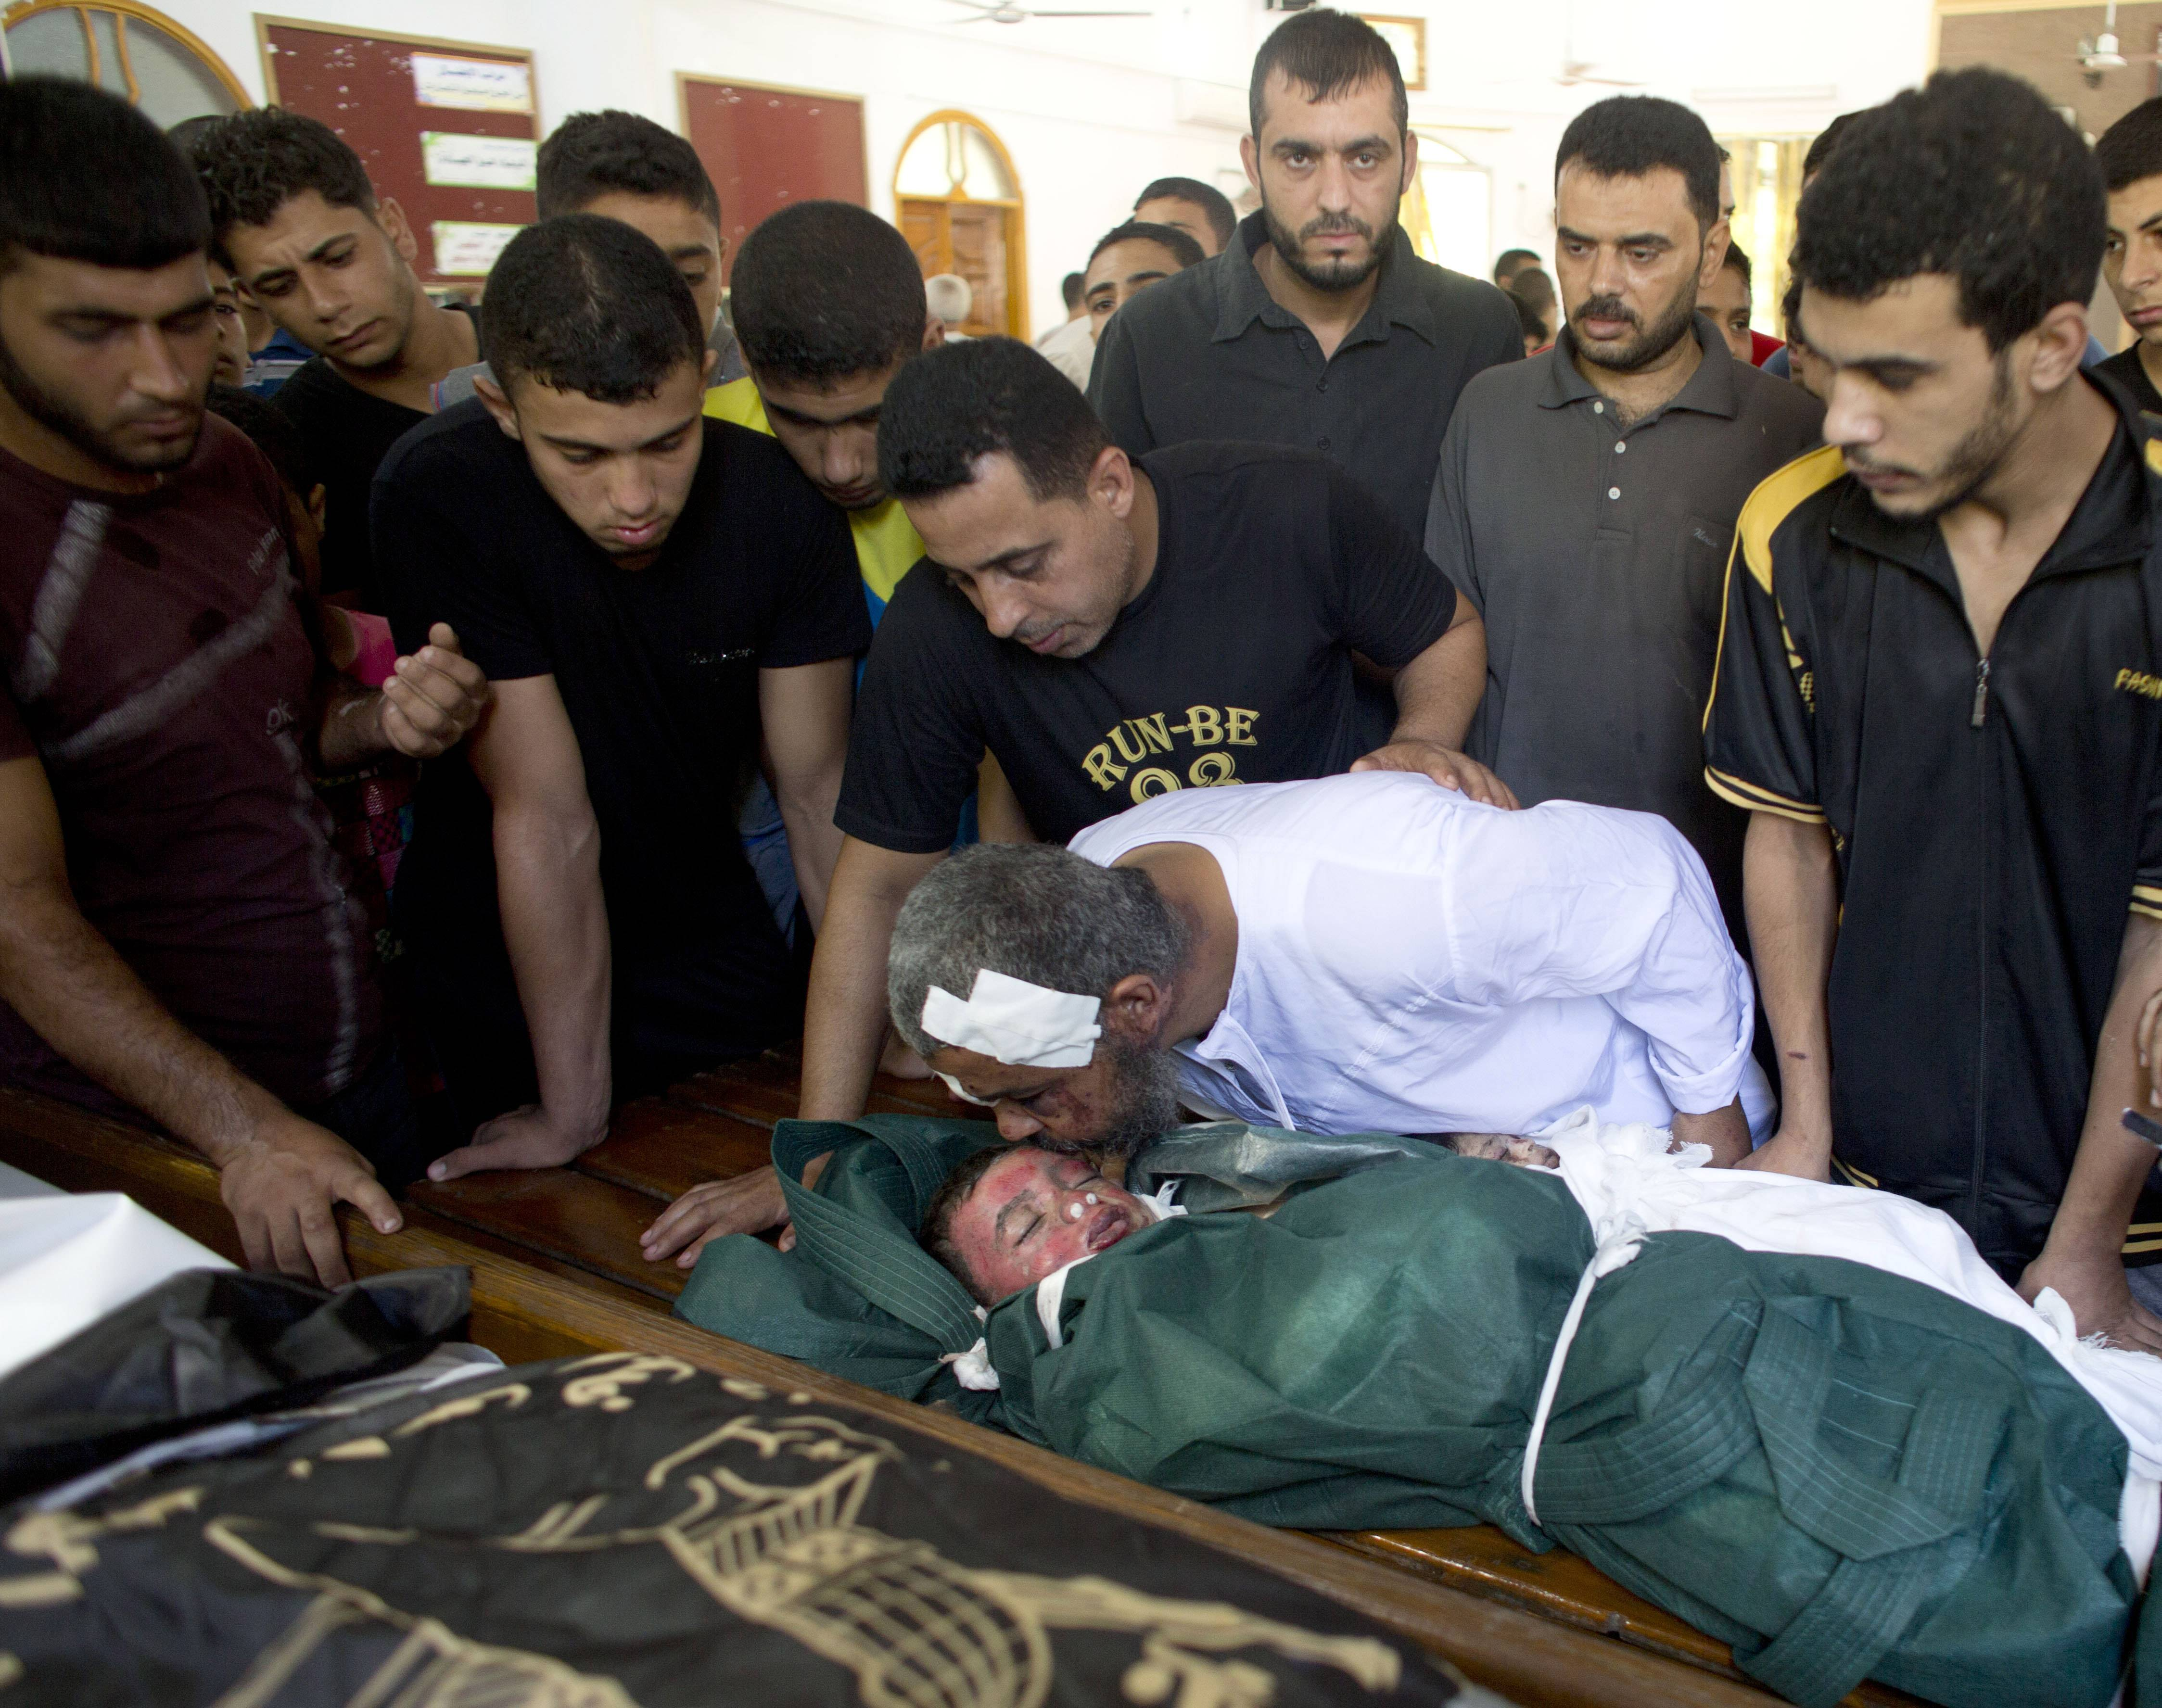 Al-Bakin family members mourn Monday for three year-old Kamal and two other family members during their funeral in Gaza City. The boy was killed along with two other family members in an Israeli missile strike on their home in the Shati refugee camp, Gaza City, on Monday.